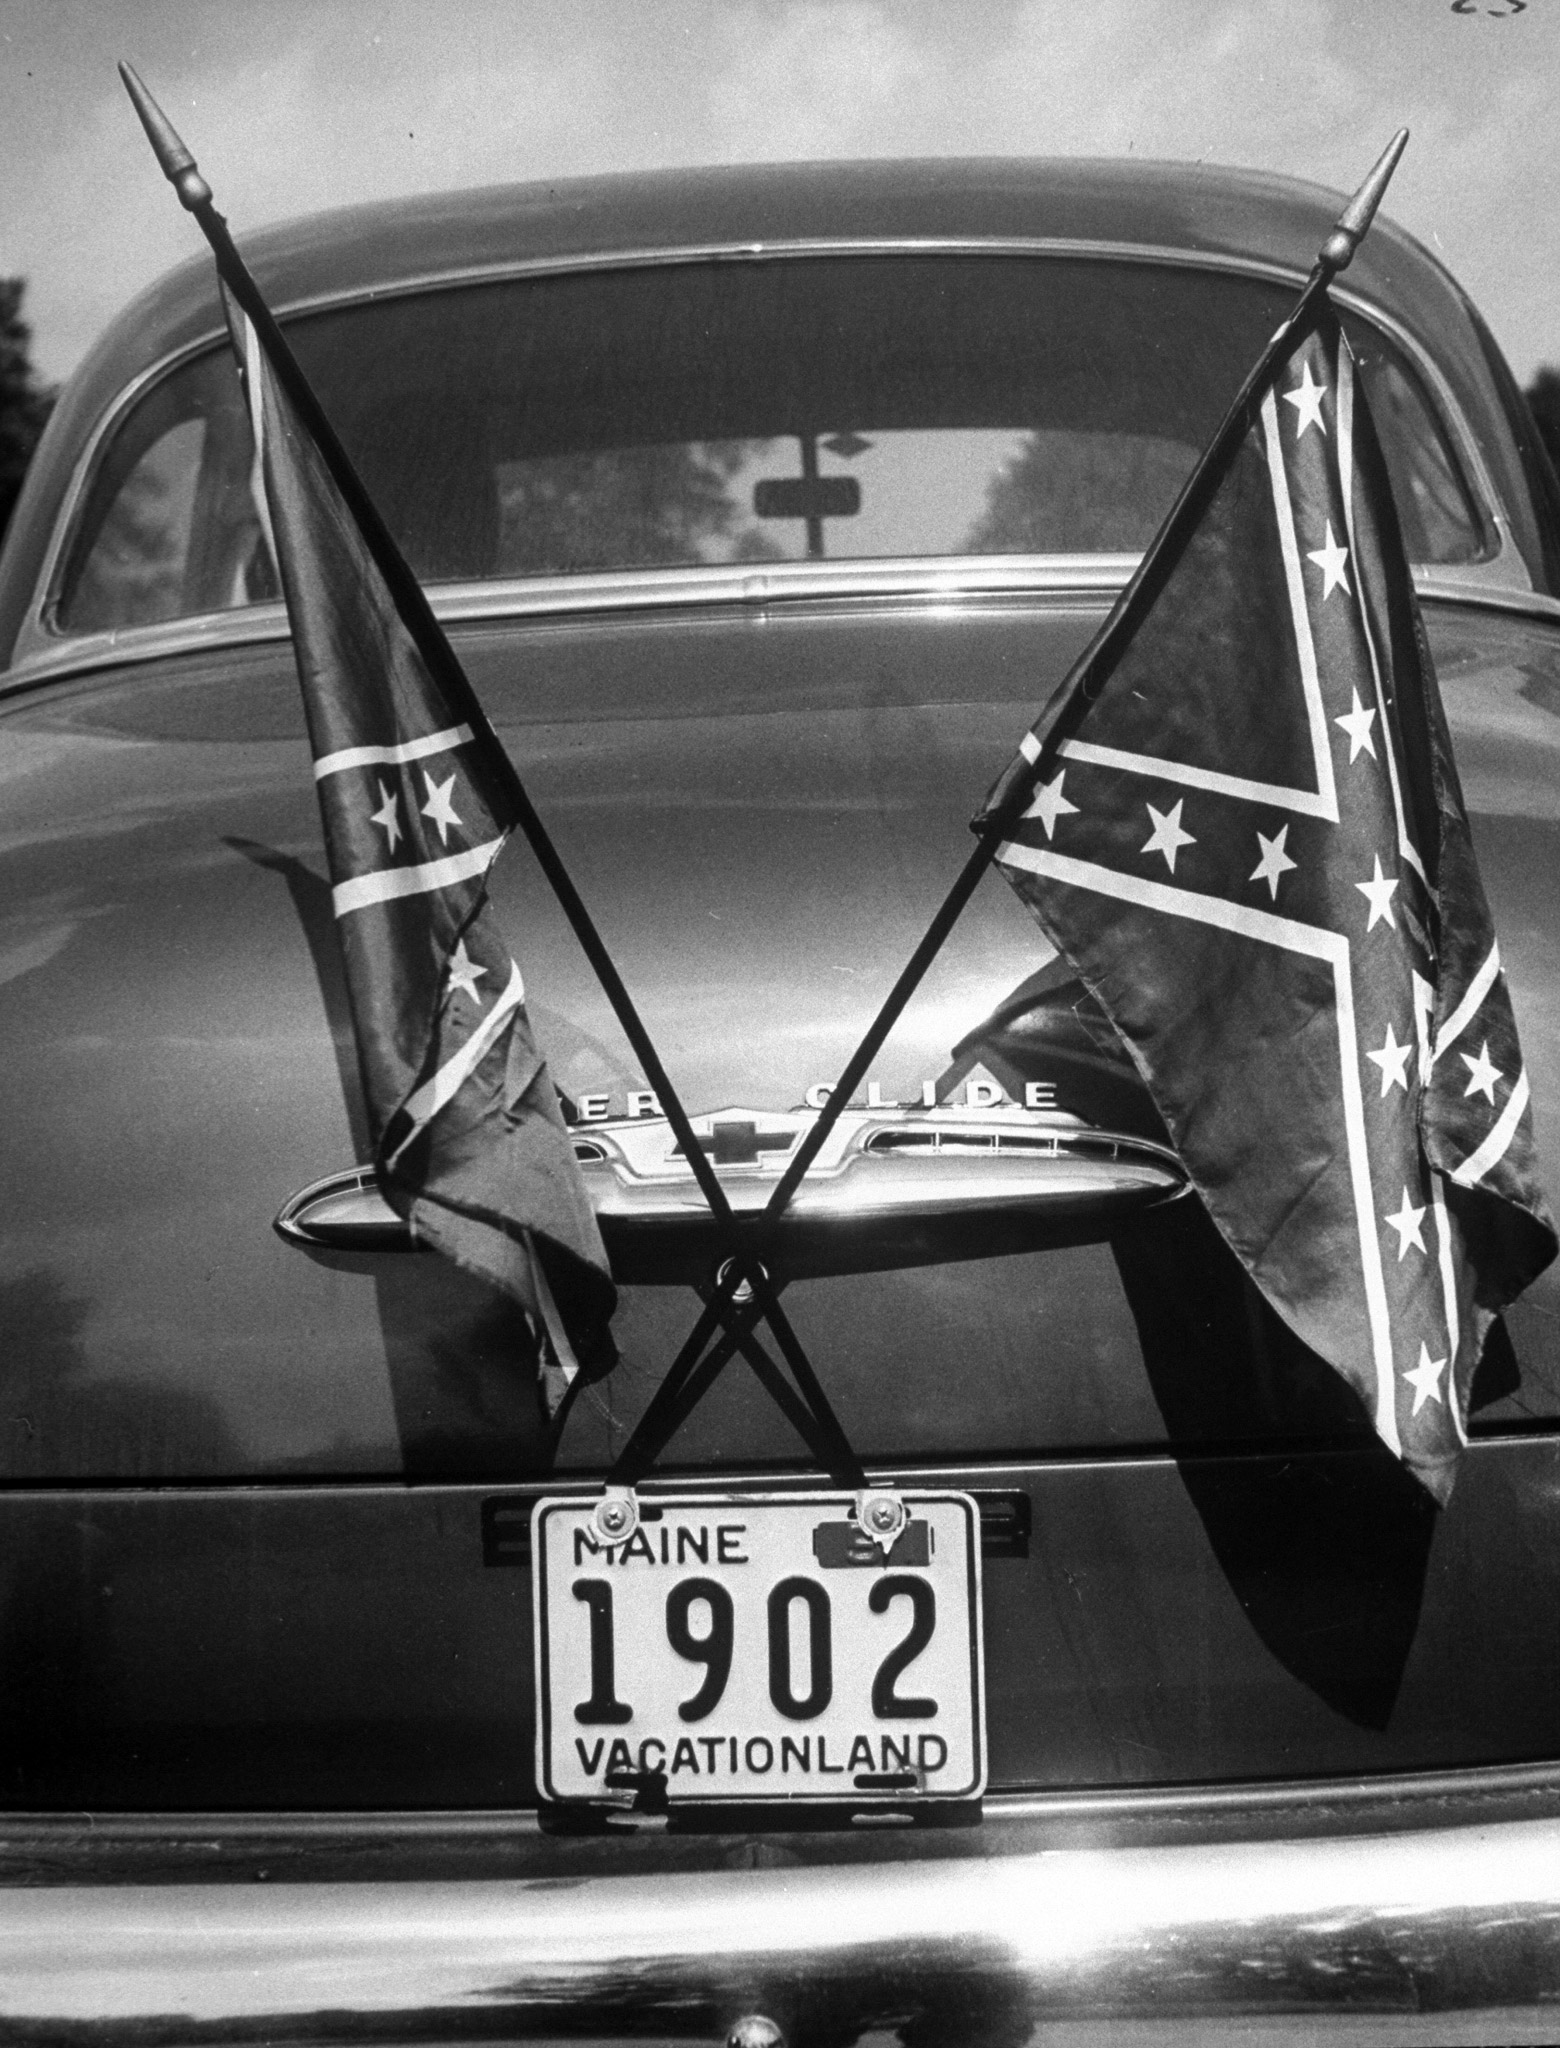 <b>Caption from LIFE.</b> Dam Yankee's car would enrage Daughters of the Confederacy, who have spoken out bitterly against using flags like fox tails on cars' radiator caps.